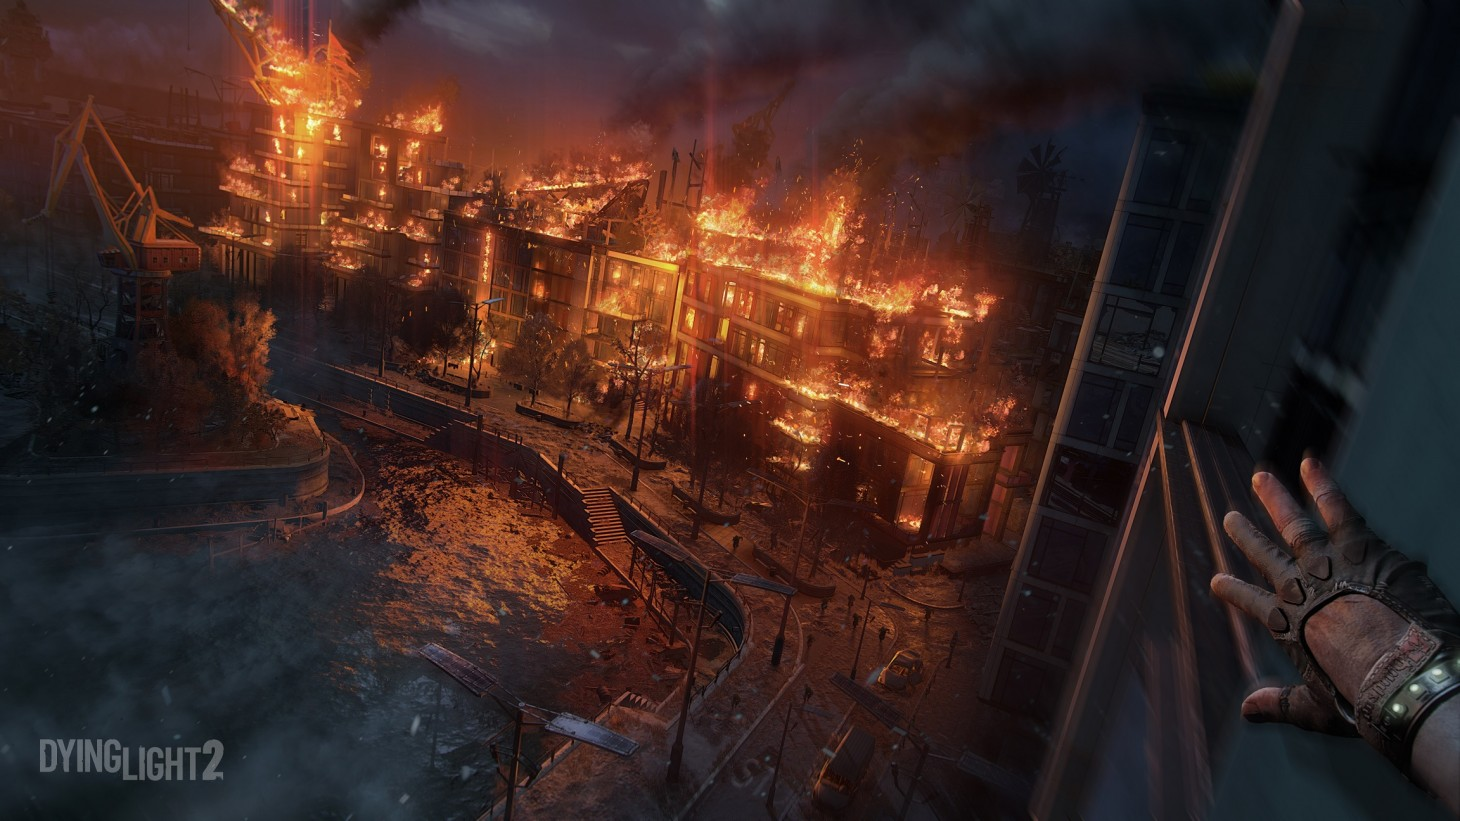 See Dying Light 2's Impressive, Extended E3 Gameplay Demo